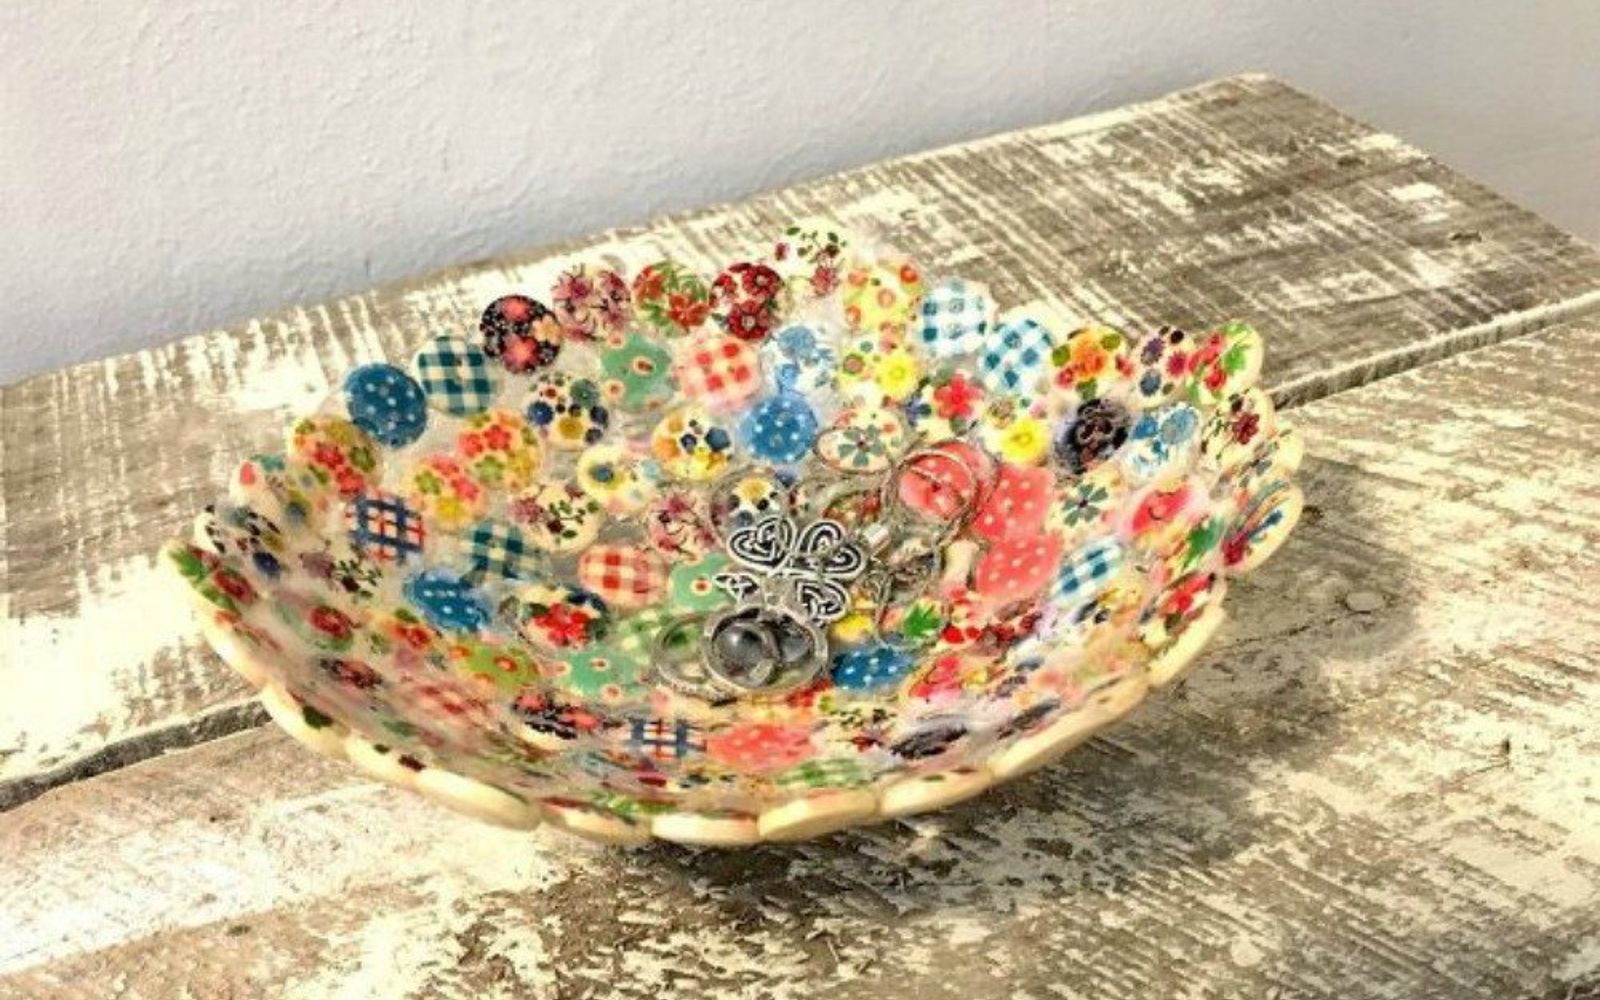 s 15 quick and easy gift ideas using buttons, Glue them into a trinket bowl